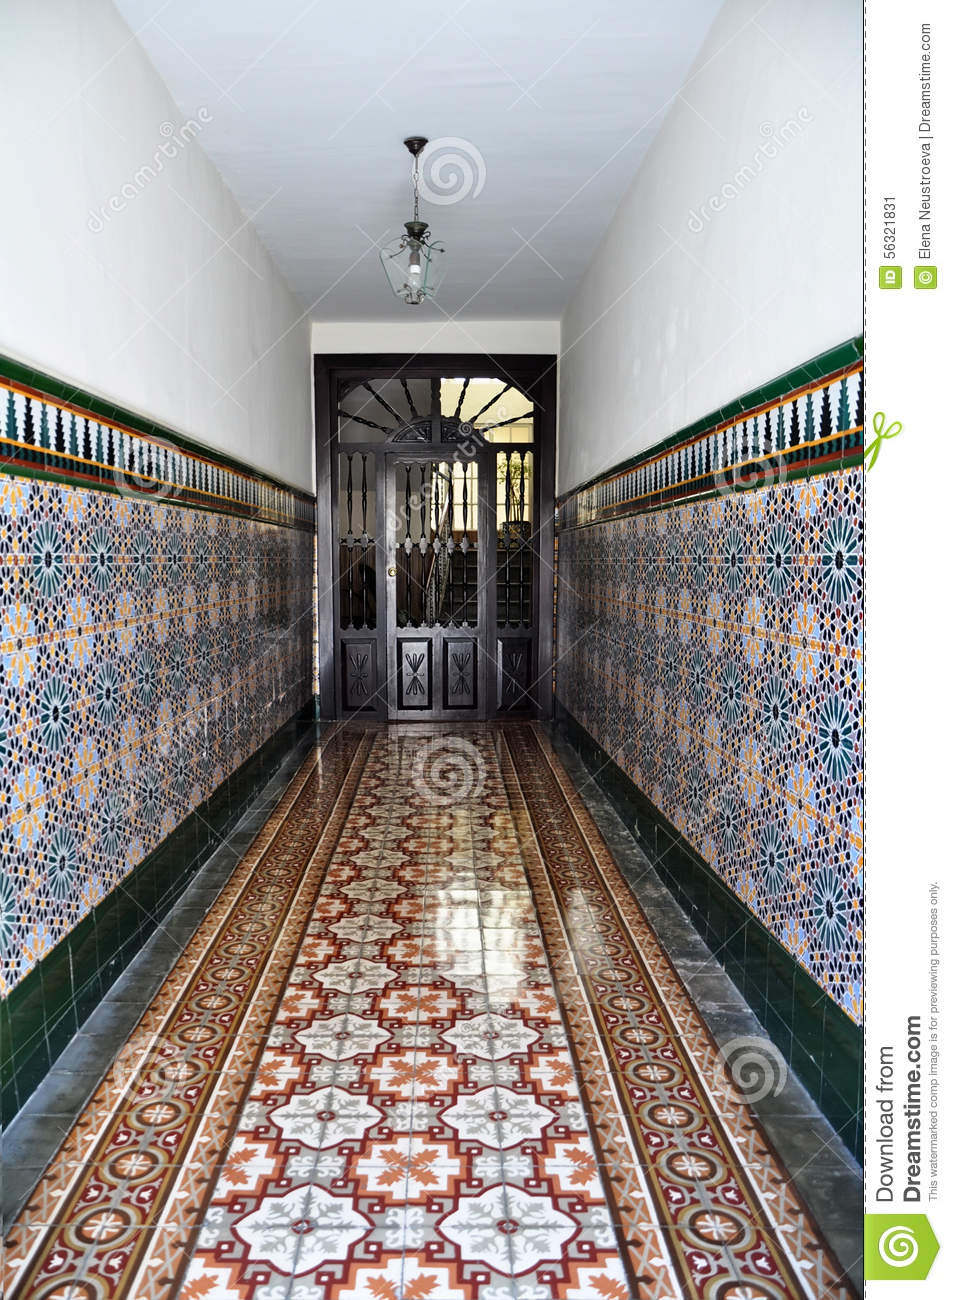 Old Spanish Wall Tile Pattern Stock Image Image Of Spain